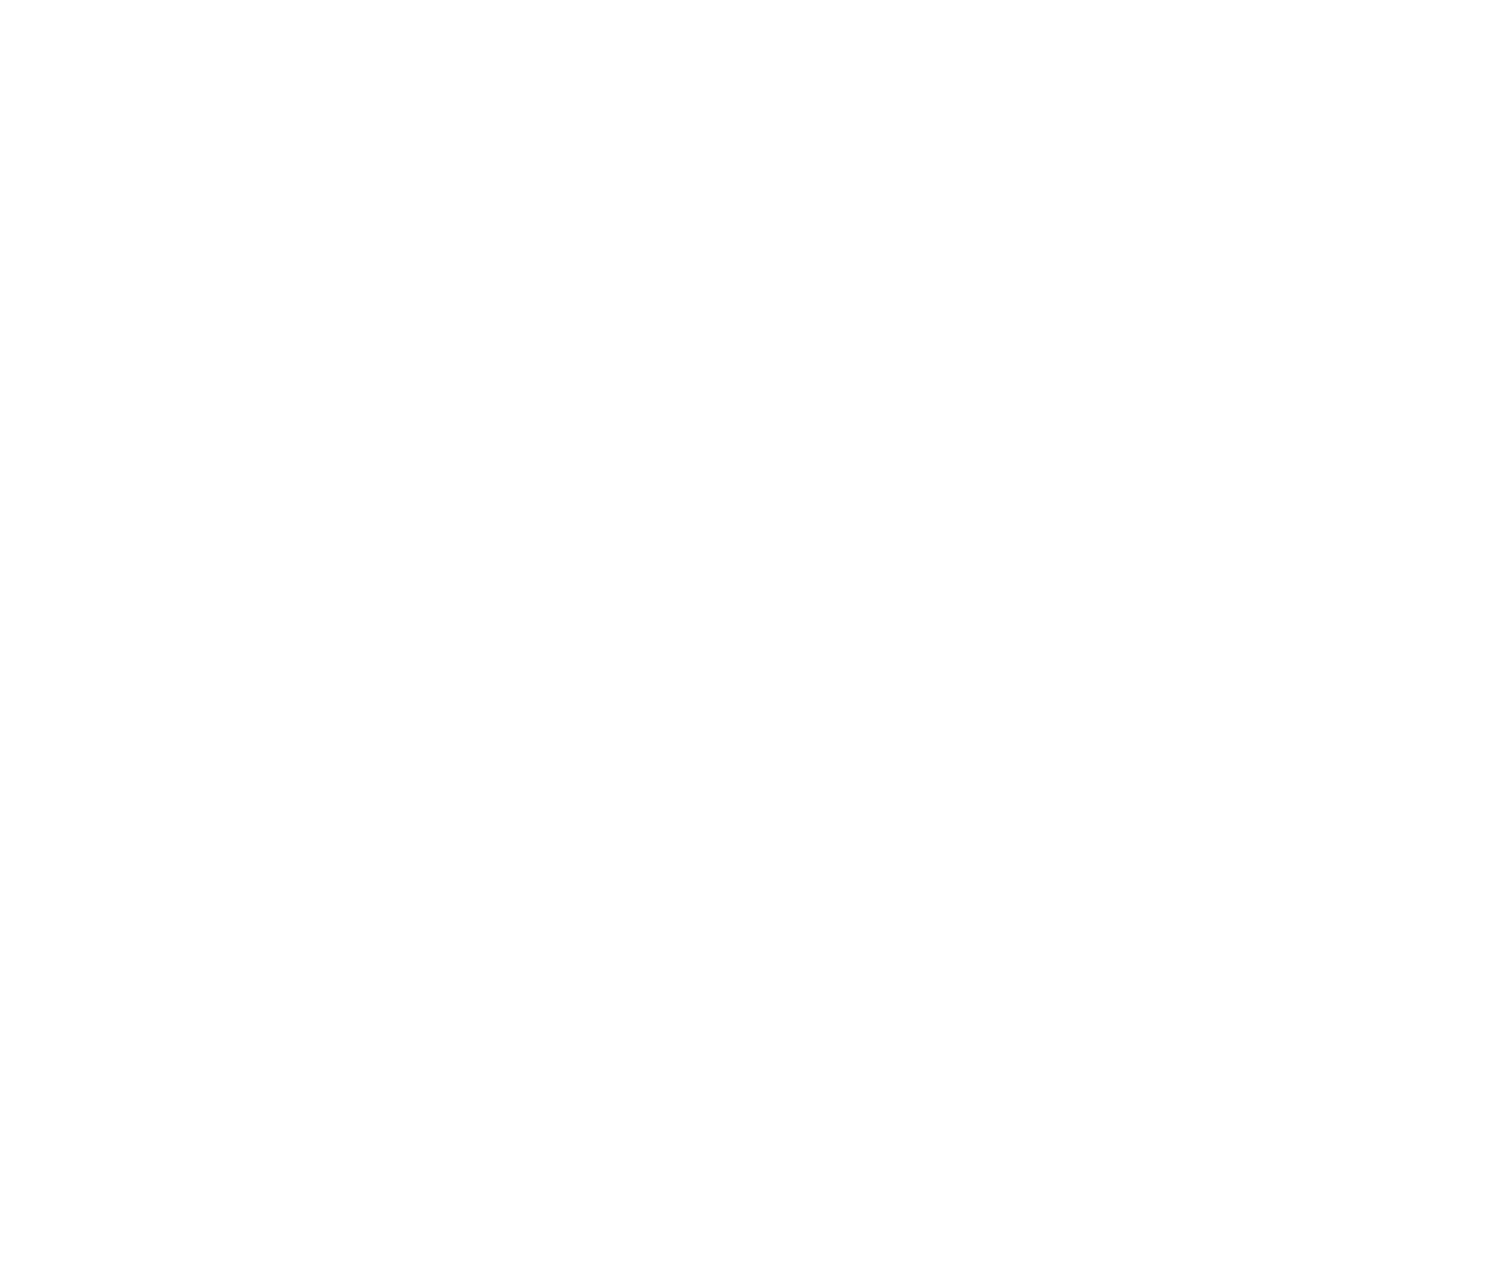 CALIFORNIA PORSCHES